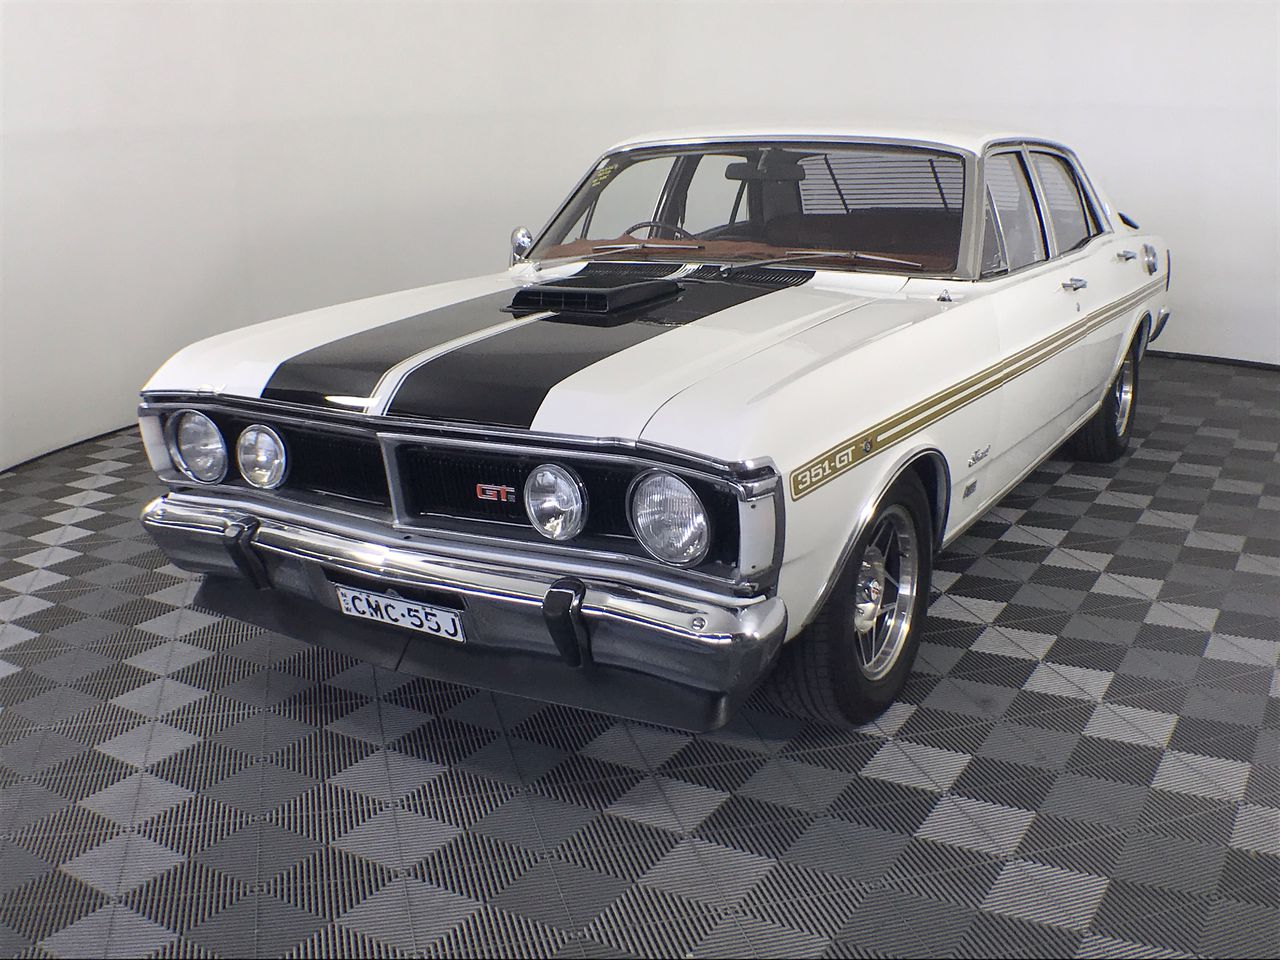 Ford Fairmont 1971 Factory Y code 302 V8 Matching Numbers